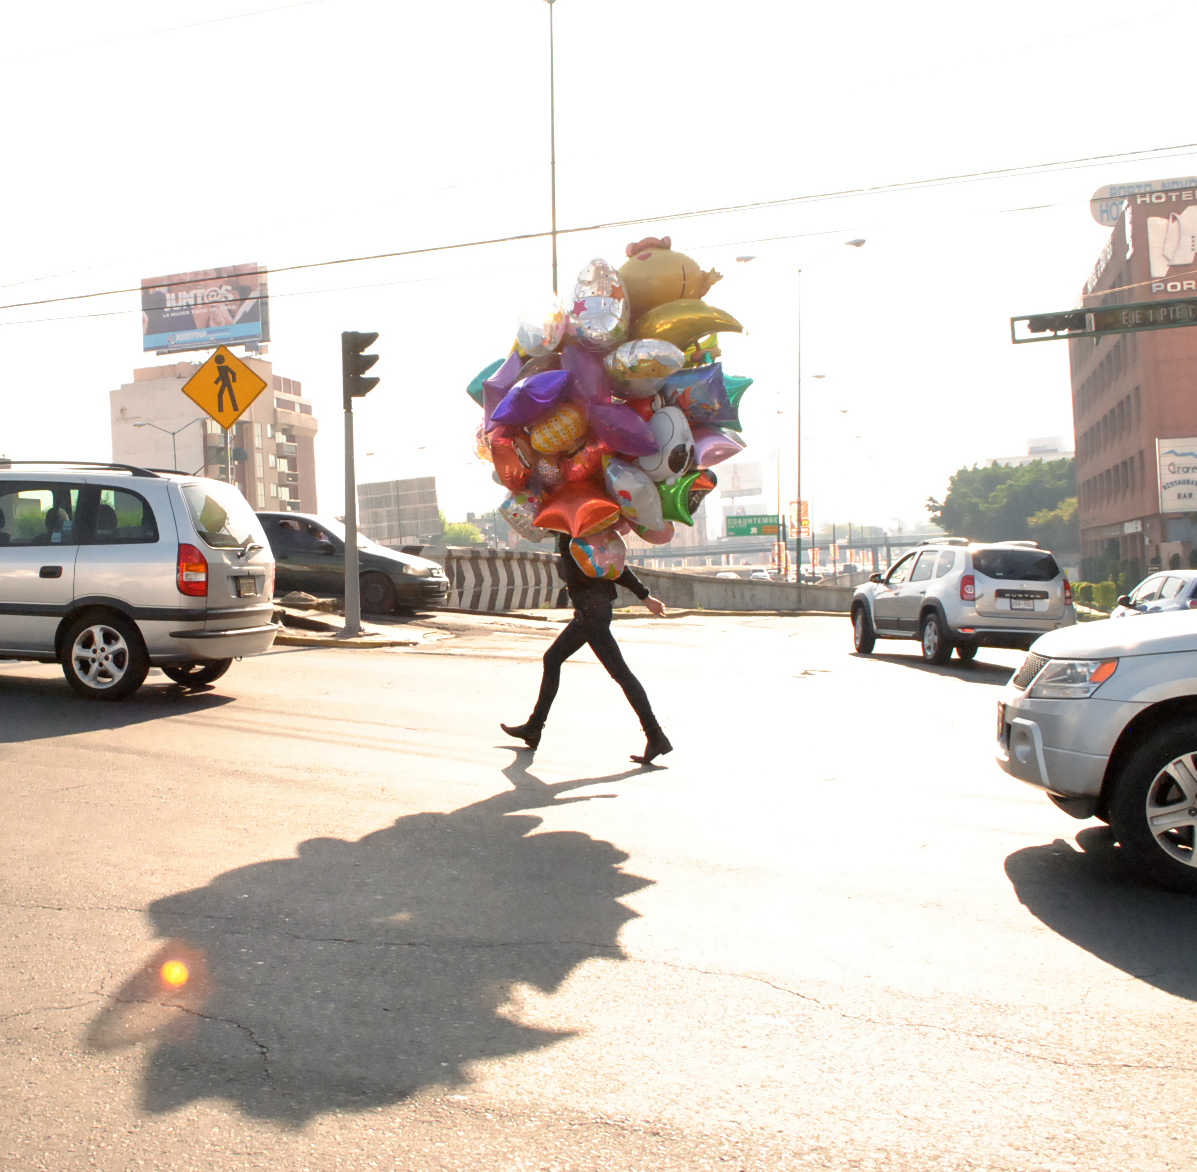 Walk in Traffic,2012 Single channel High Definition video, 16:9, colour, sound 3 minutes 7 seconds  Sound By Bree van Reyk